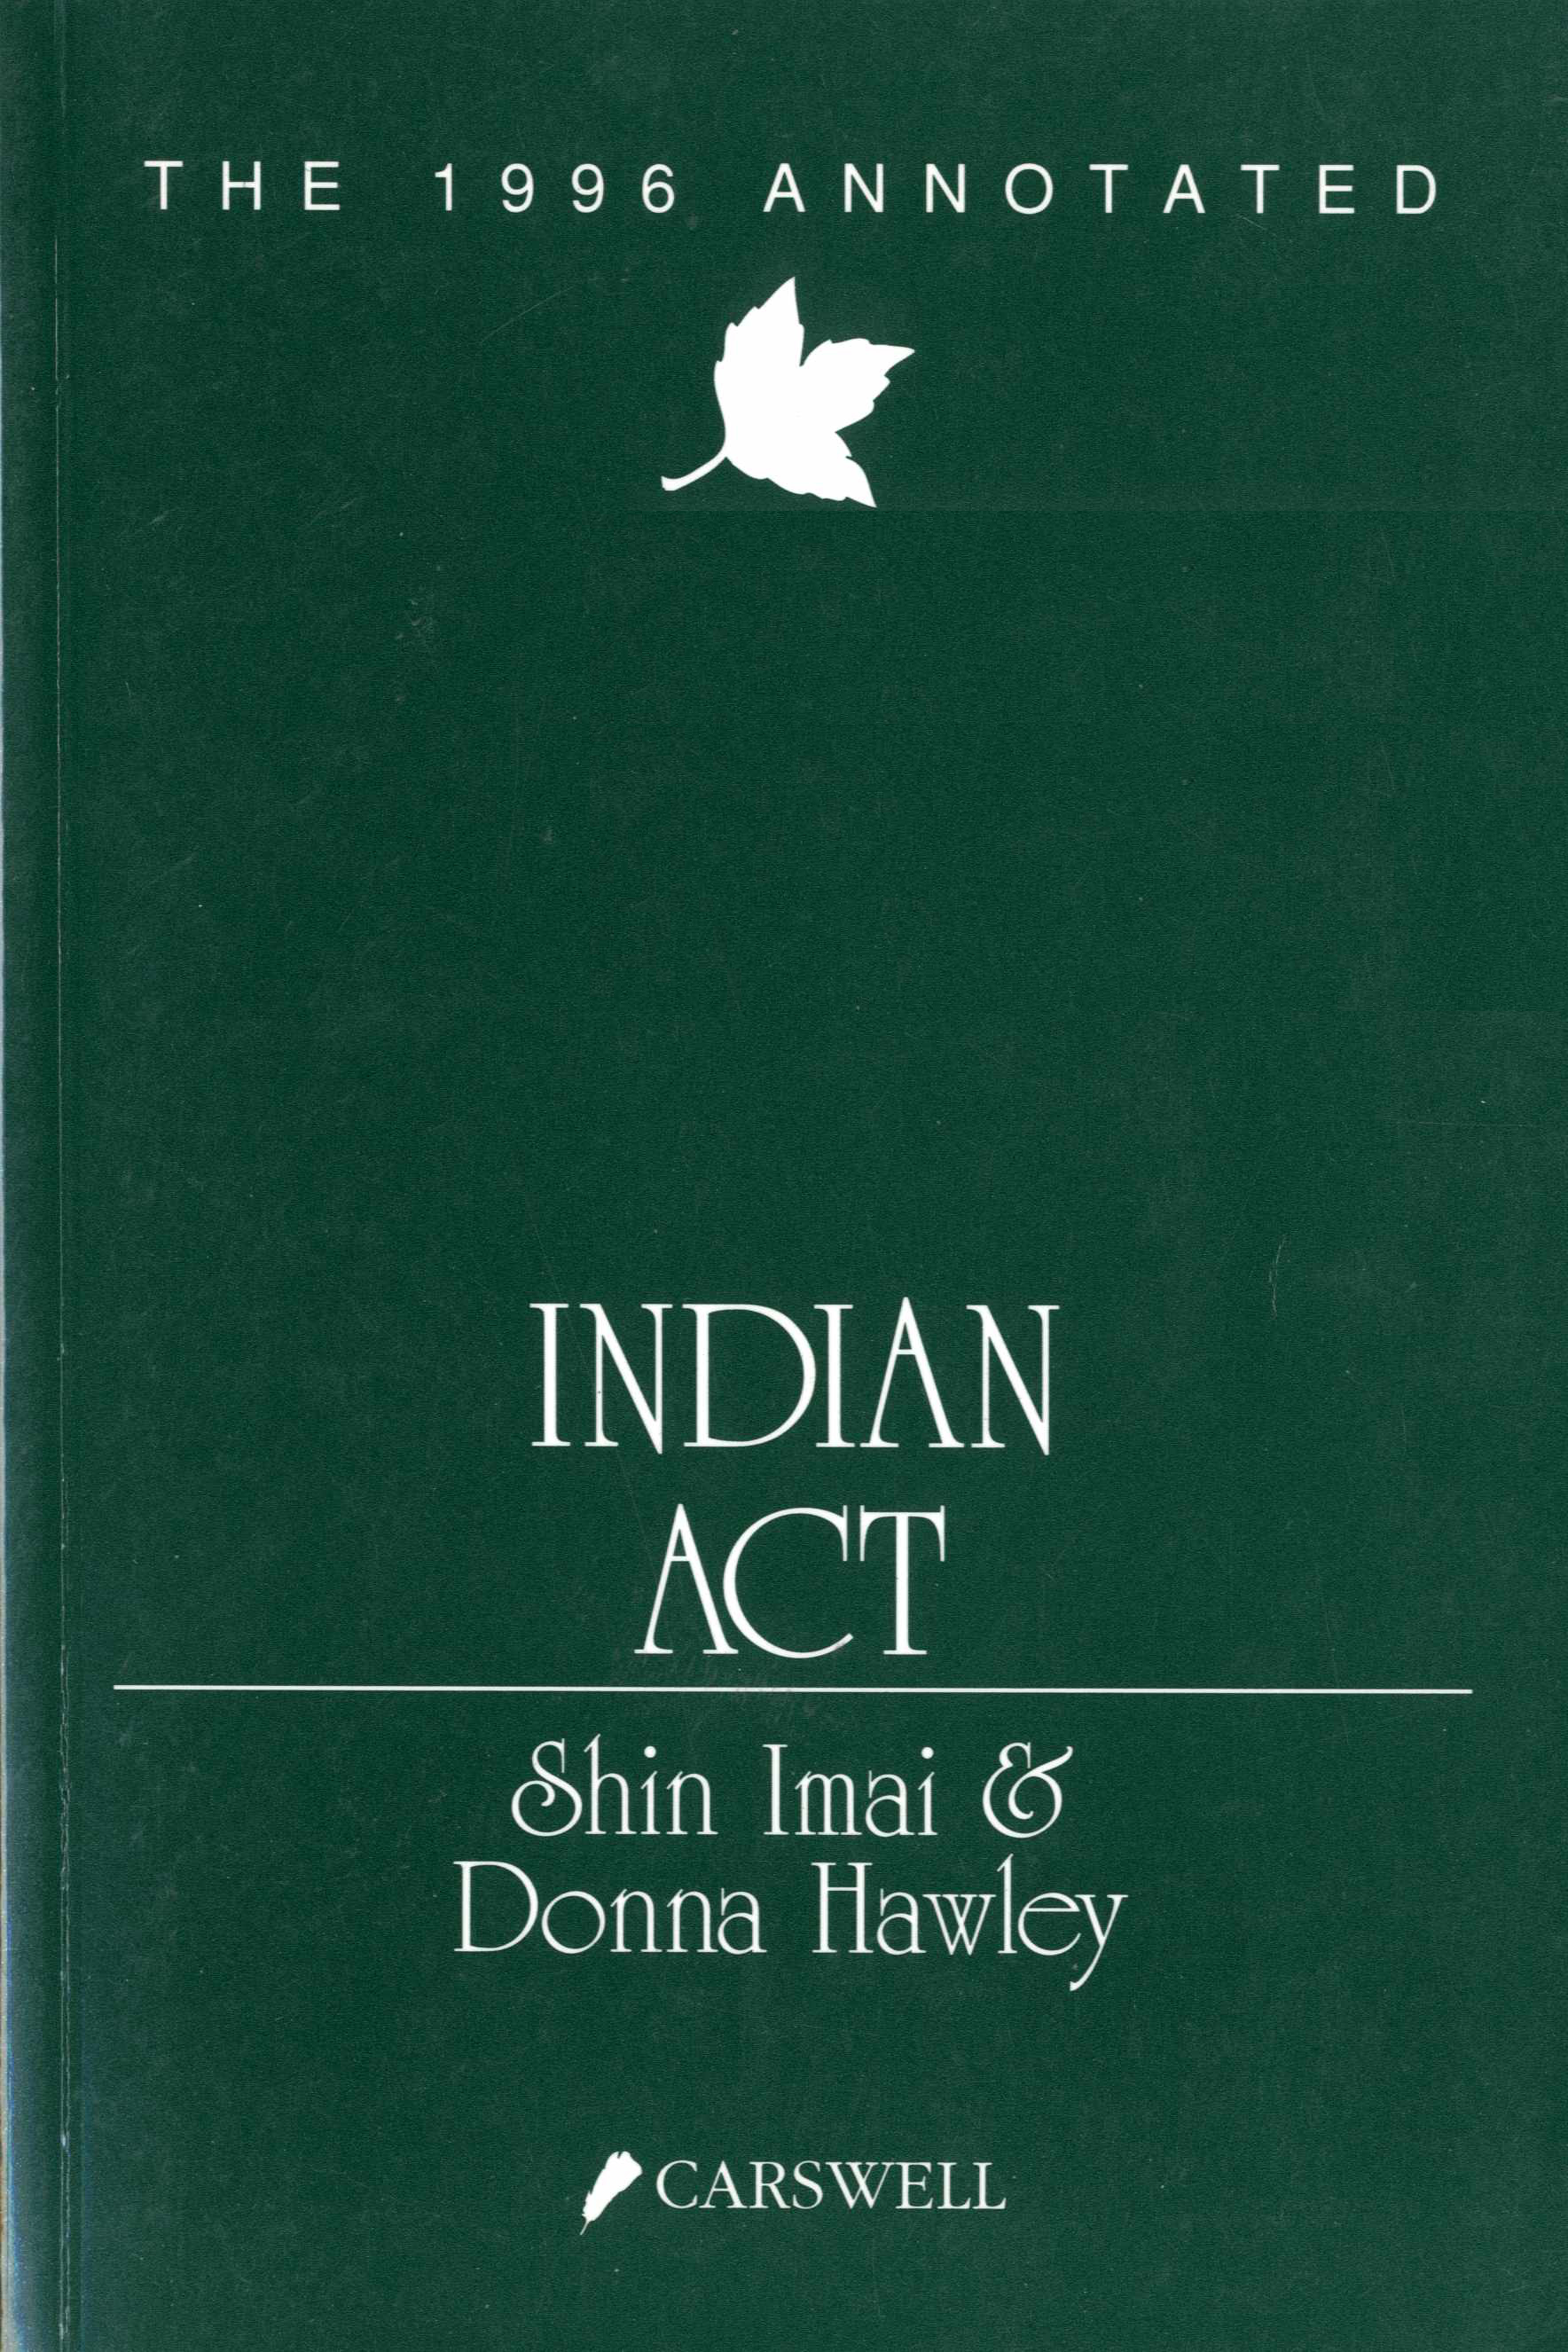 The 1996 Annotated Indian Act Image